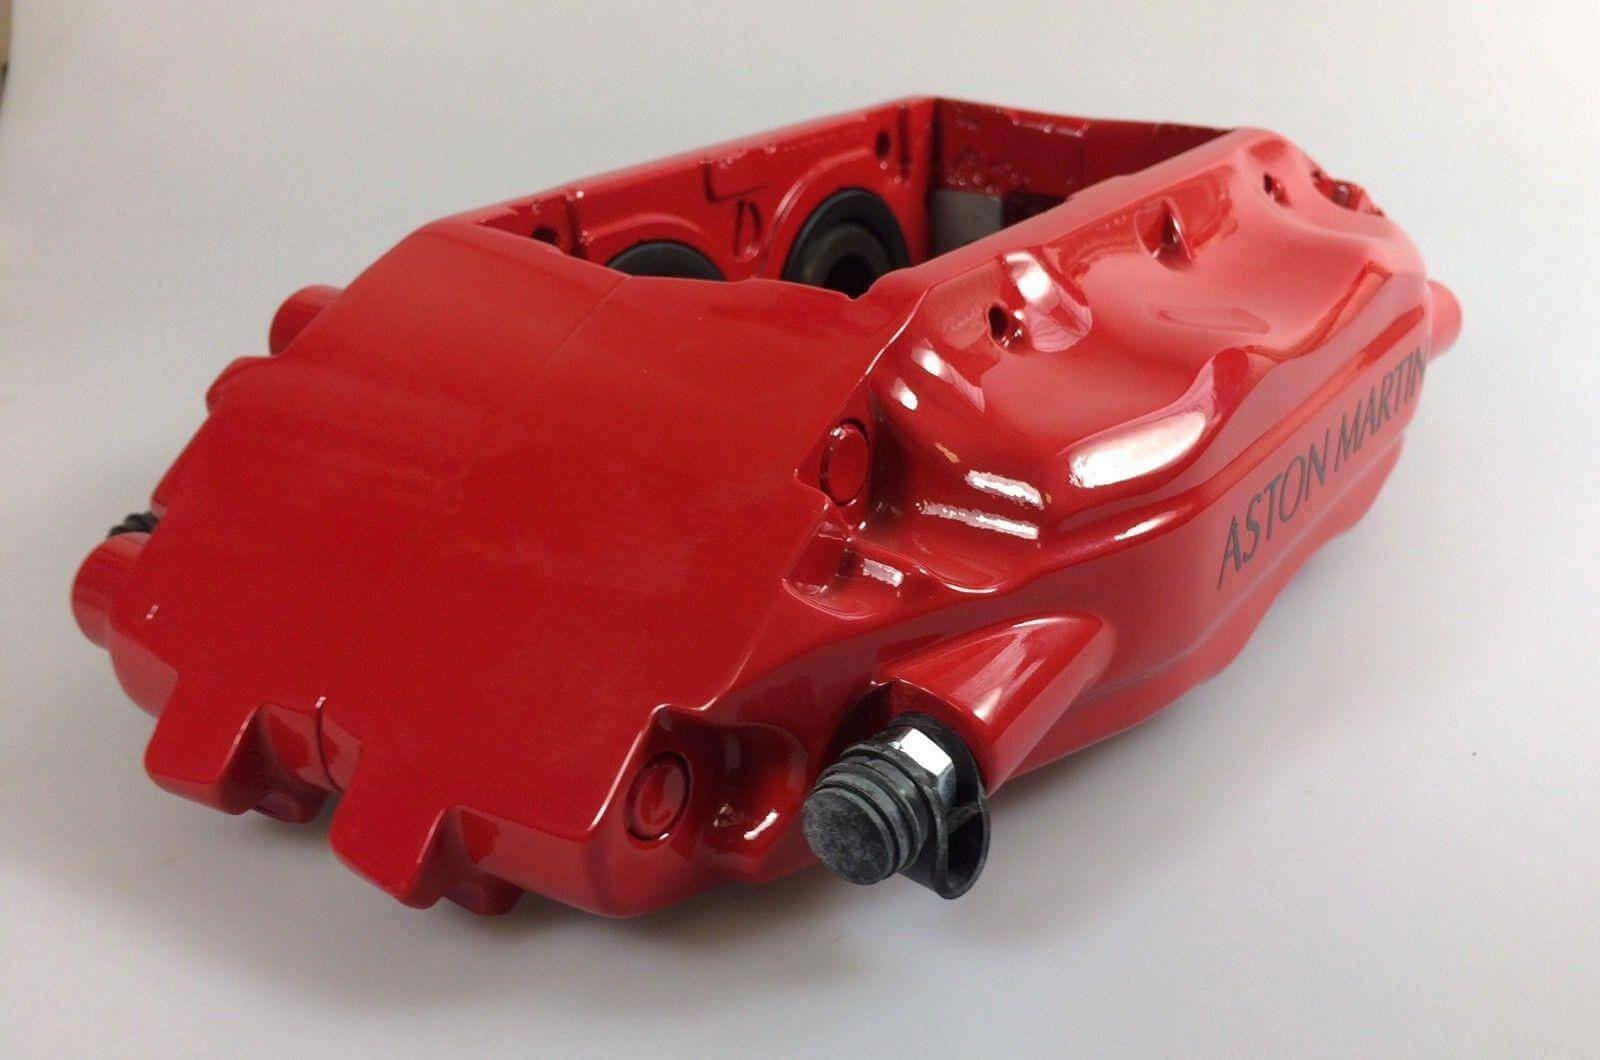 VANQUISH FRONT BRAKE CALIPER LH RED RECONDITIONED – 4R12-280459-AA.